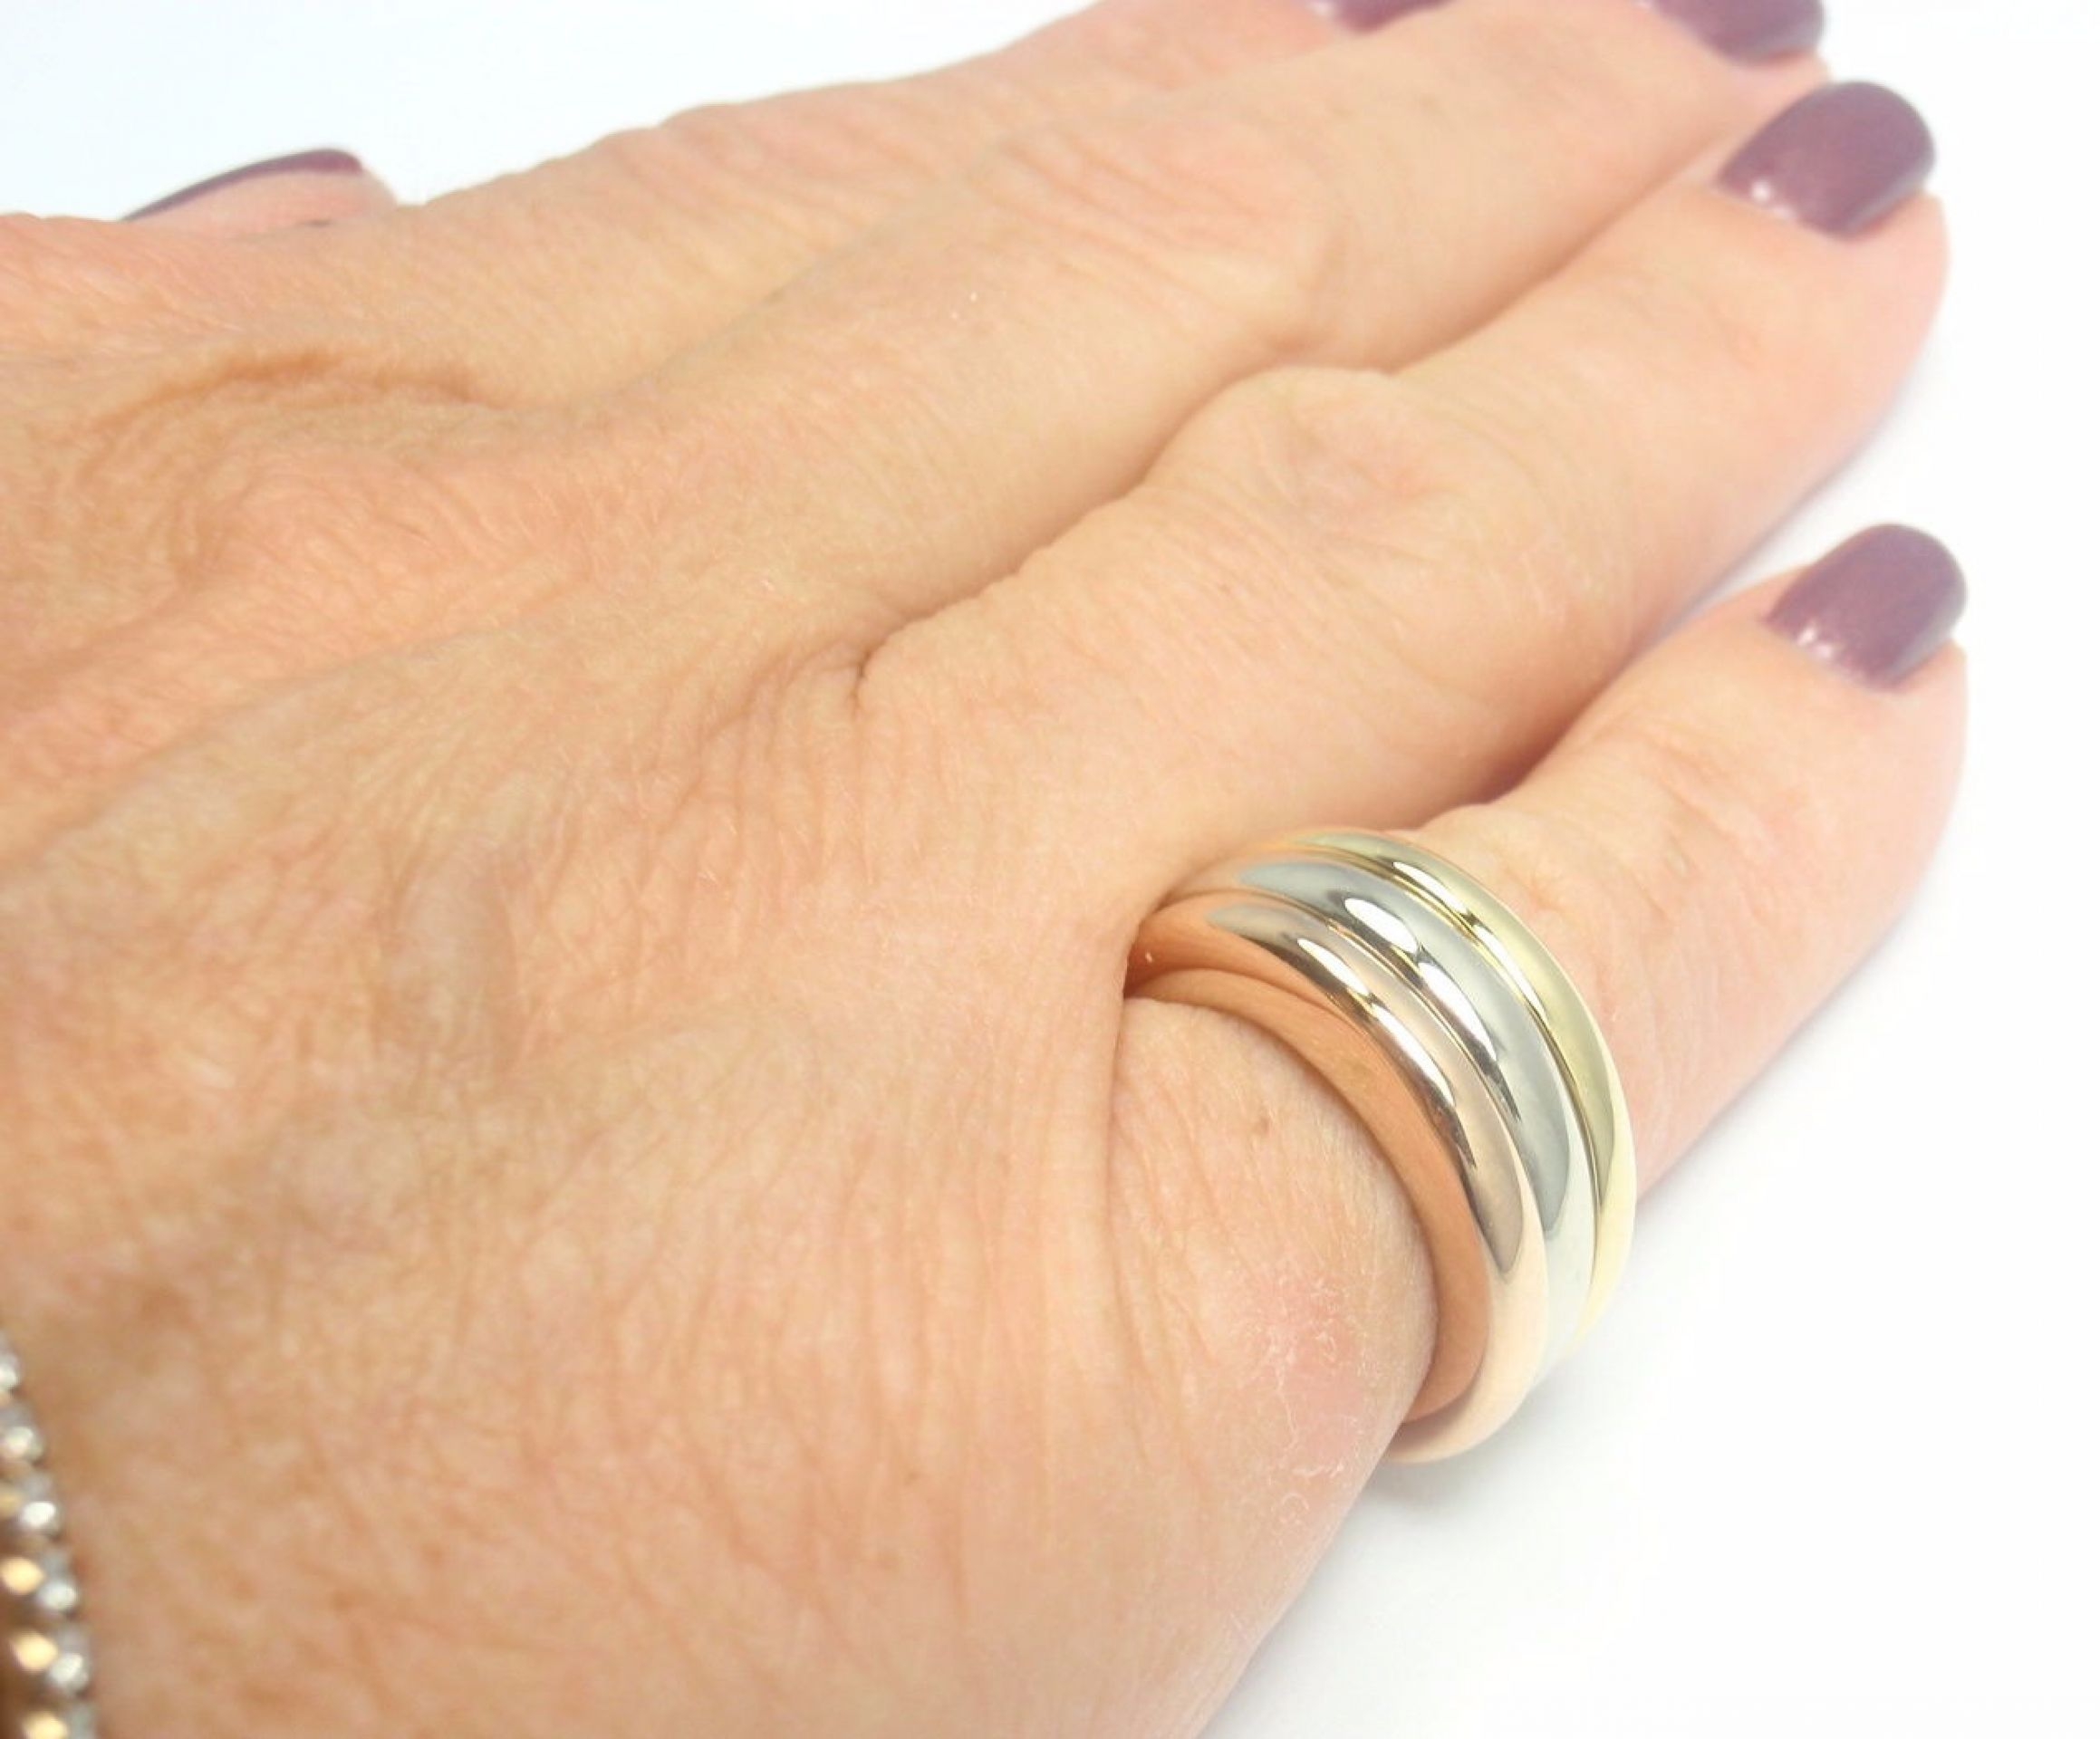 RARE! AUTHENTIC CARTIER 18K TRI-GOLD STACKING BAND RING, SIZE 48 US 4 3/4